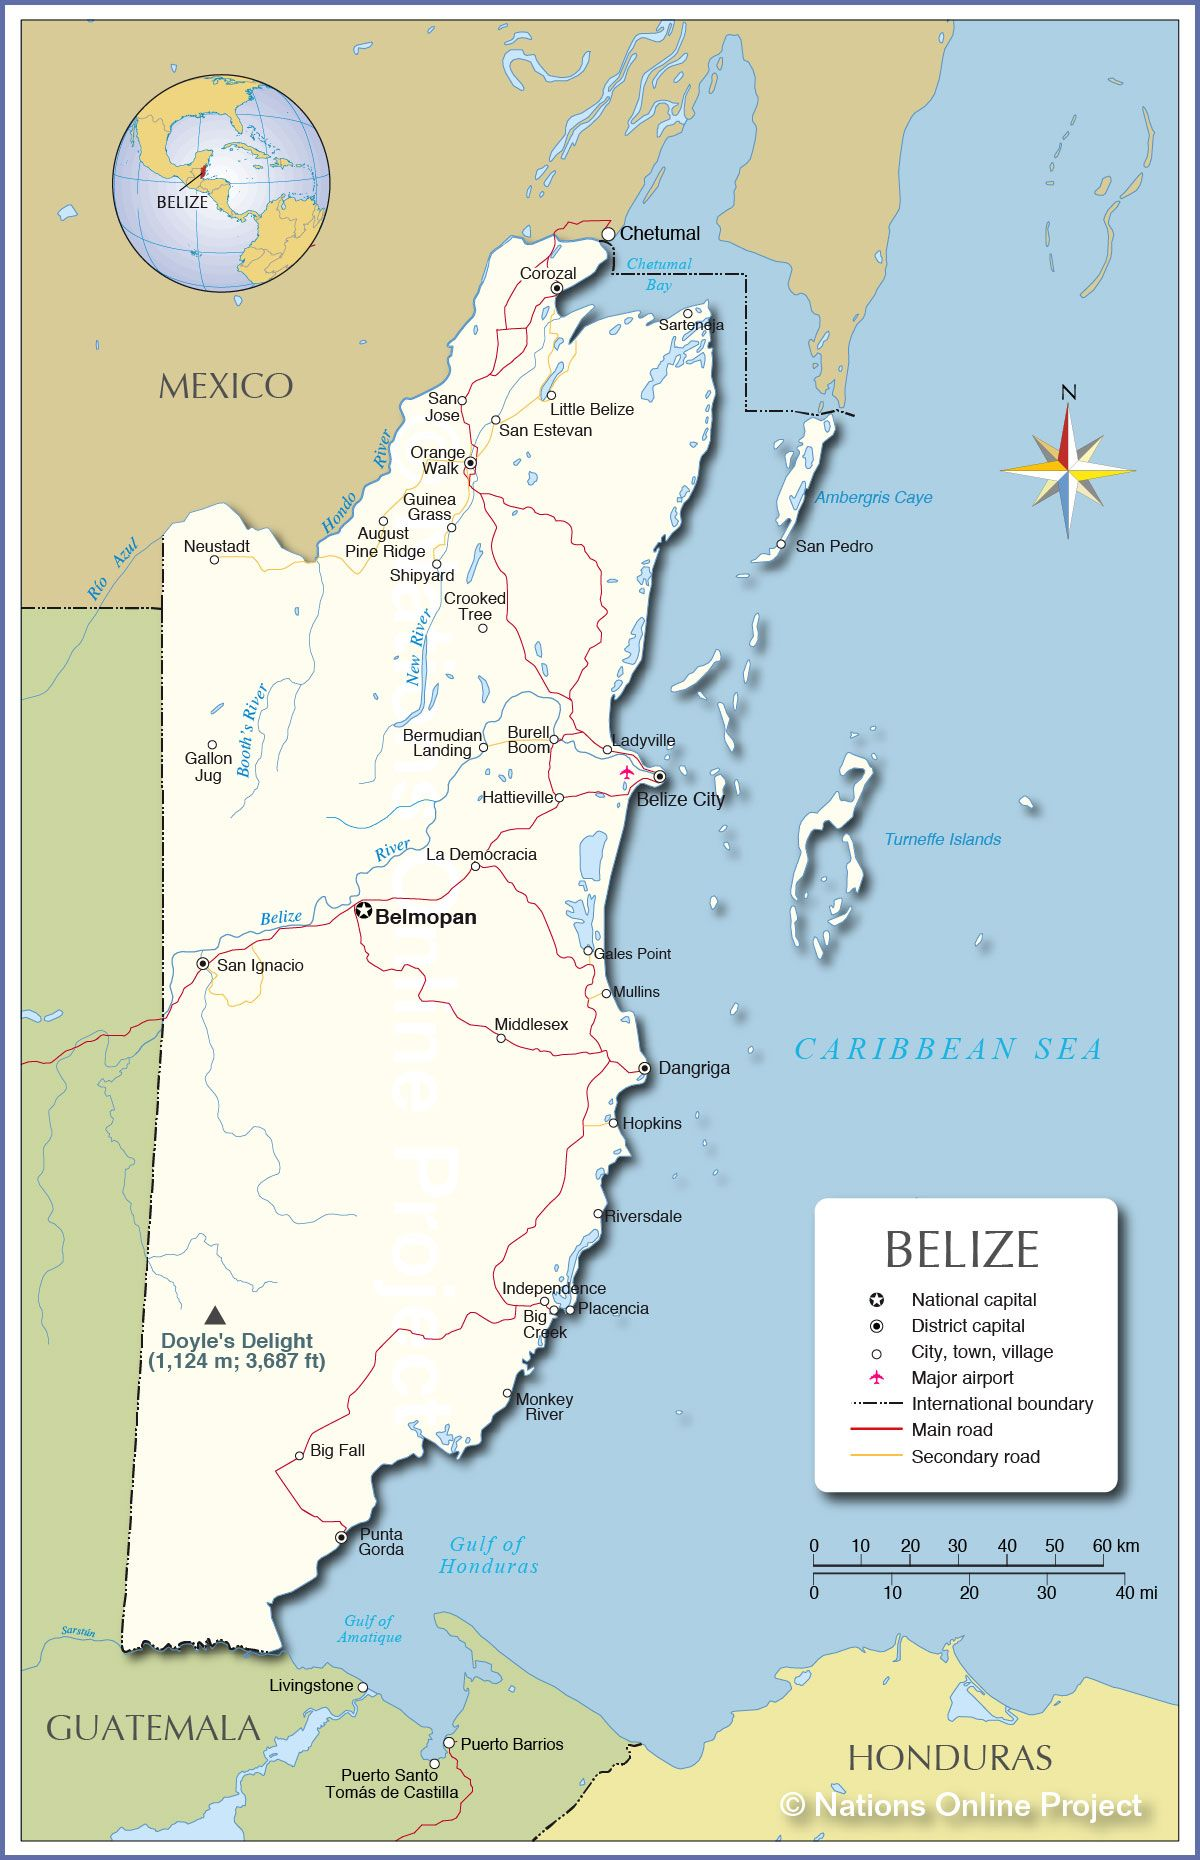 Belize is a country on the northeastern coast of Central America. It is the only country in Central America that has English as its official language